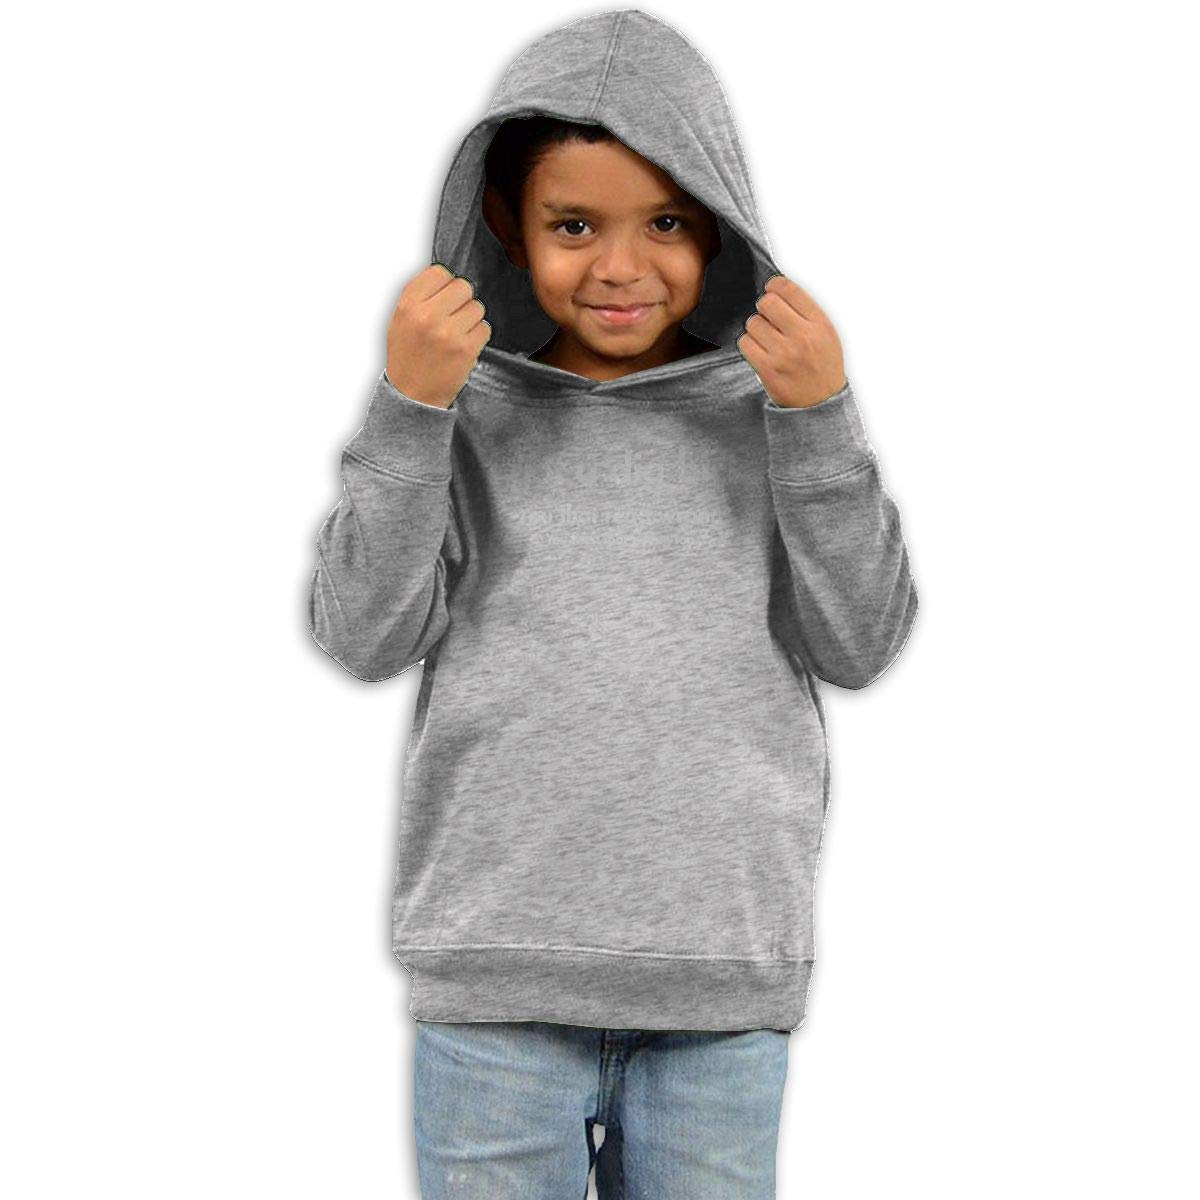 GUOZX Childrens Hooded Sweater I Got A Dig Bick You That Read Wrong You Read That Wrong Too Children Sweater Black